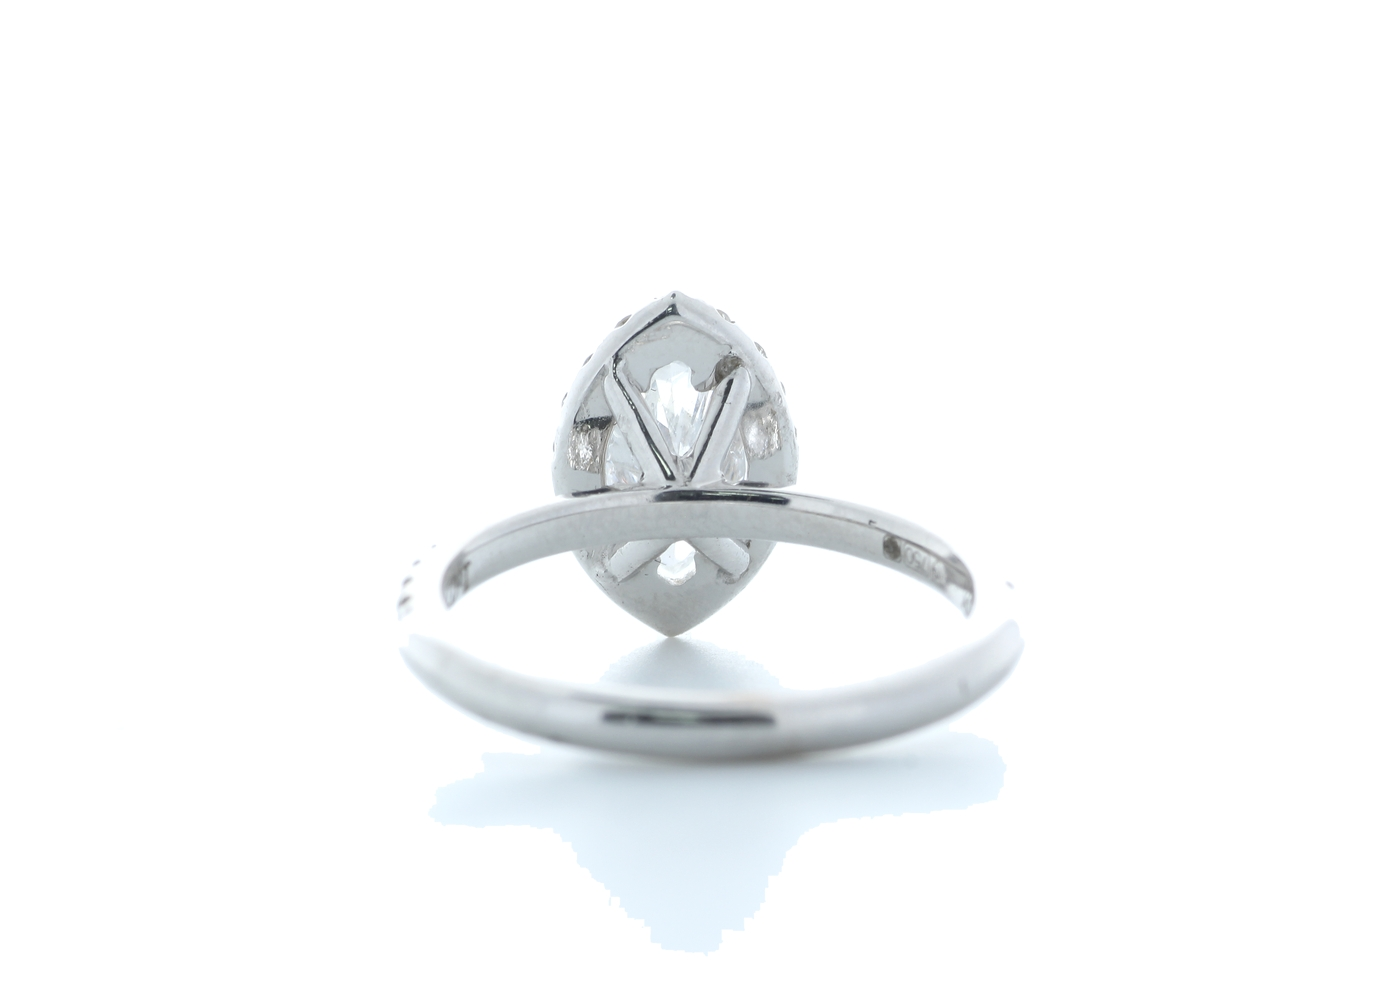 18ct White Gold Marquise Diamond With Halo Setting Ring 1.51 (1.02) Carats - Image 3 of 5